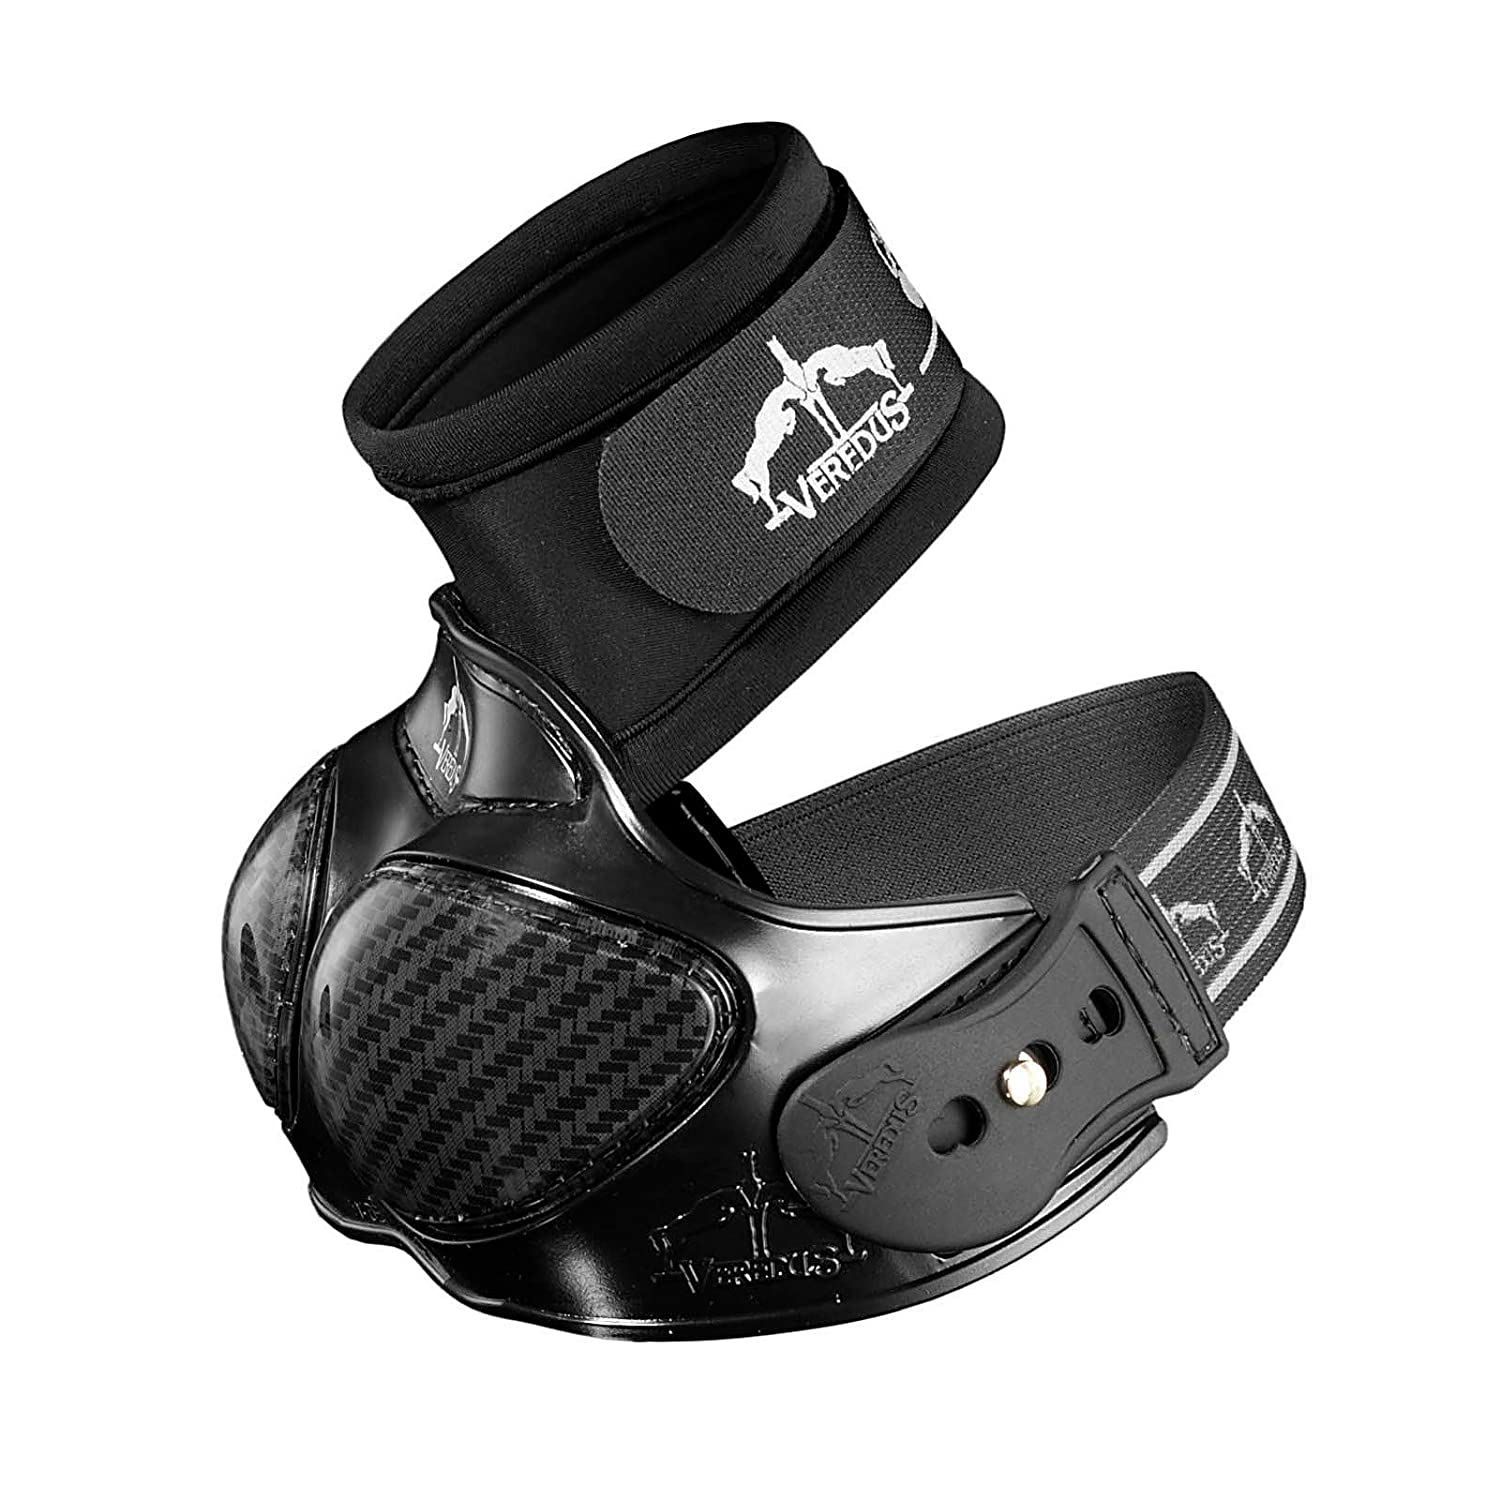 VEREDUS Carbon Shield Protector Boots